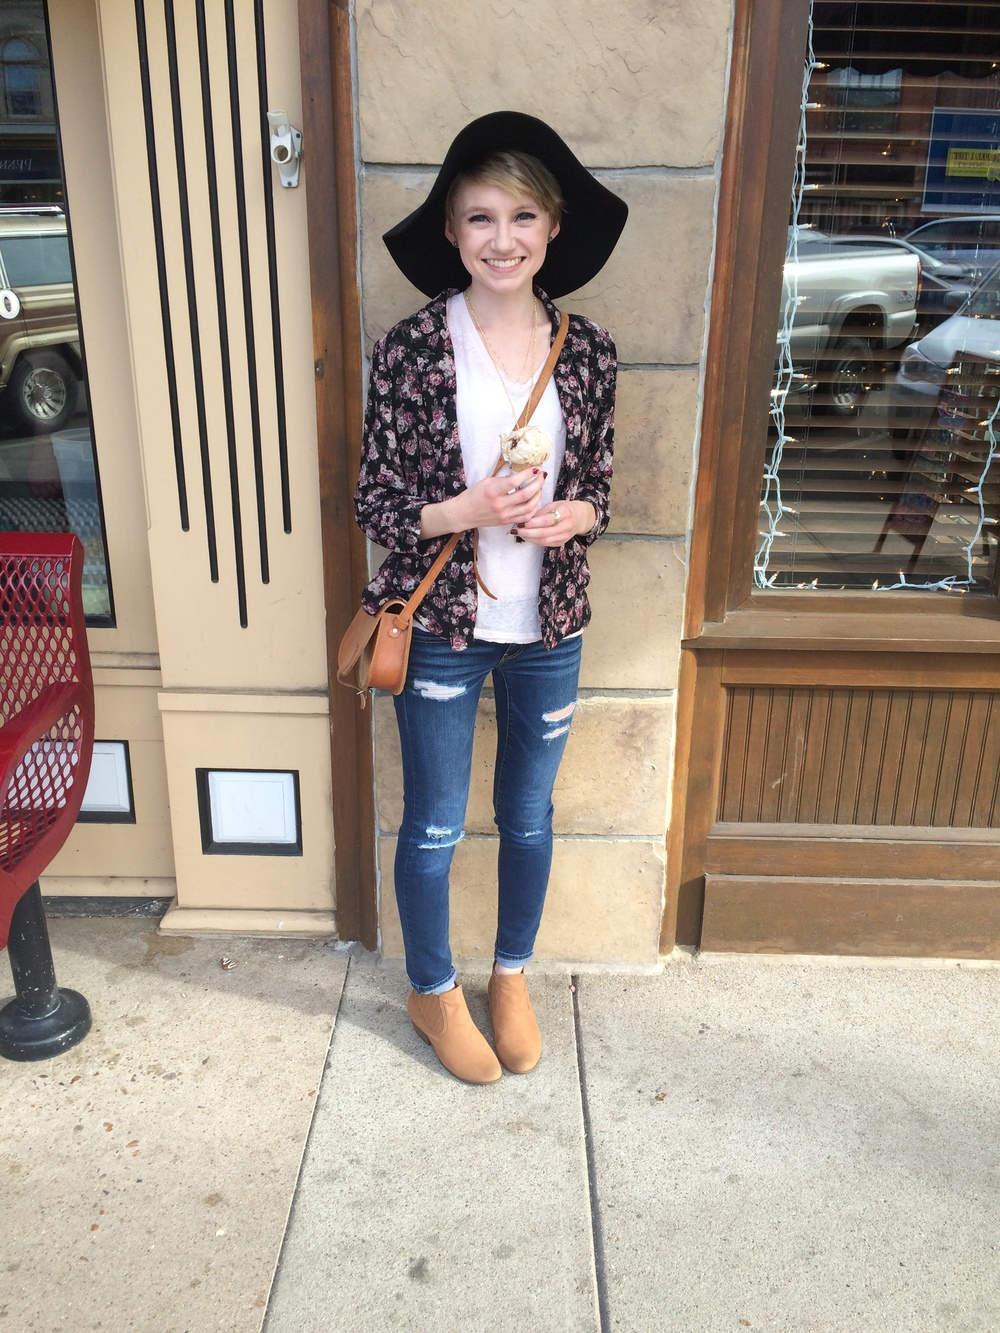 Name: Anna Style Inspiration: Audrey Hepburn because she is adorable, classic, and beautiful  Favorite Place to Shop in Fort Collins: Thrift Stores, you never know what you're going to find there!  Favorite Decade: The 1950's, definitely not the 1970's or 1980's